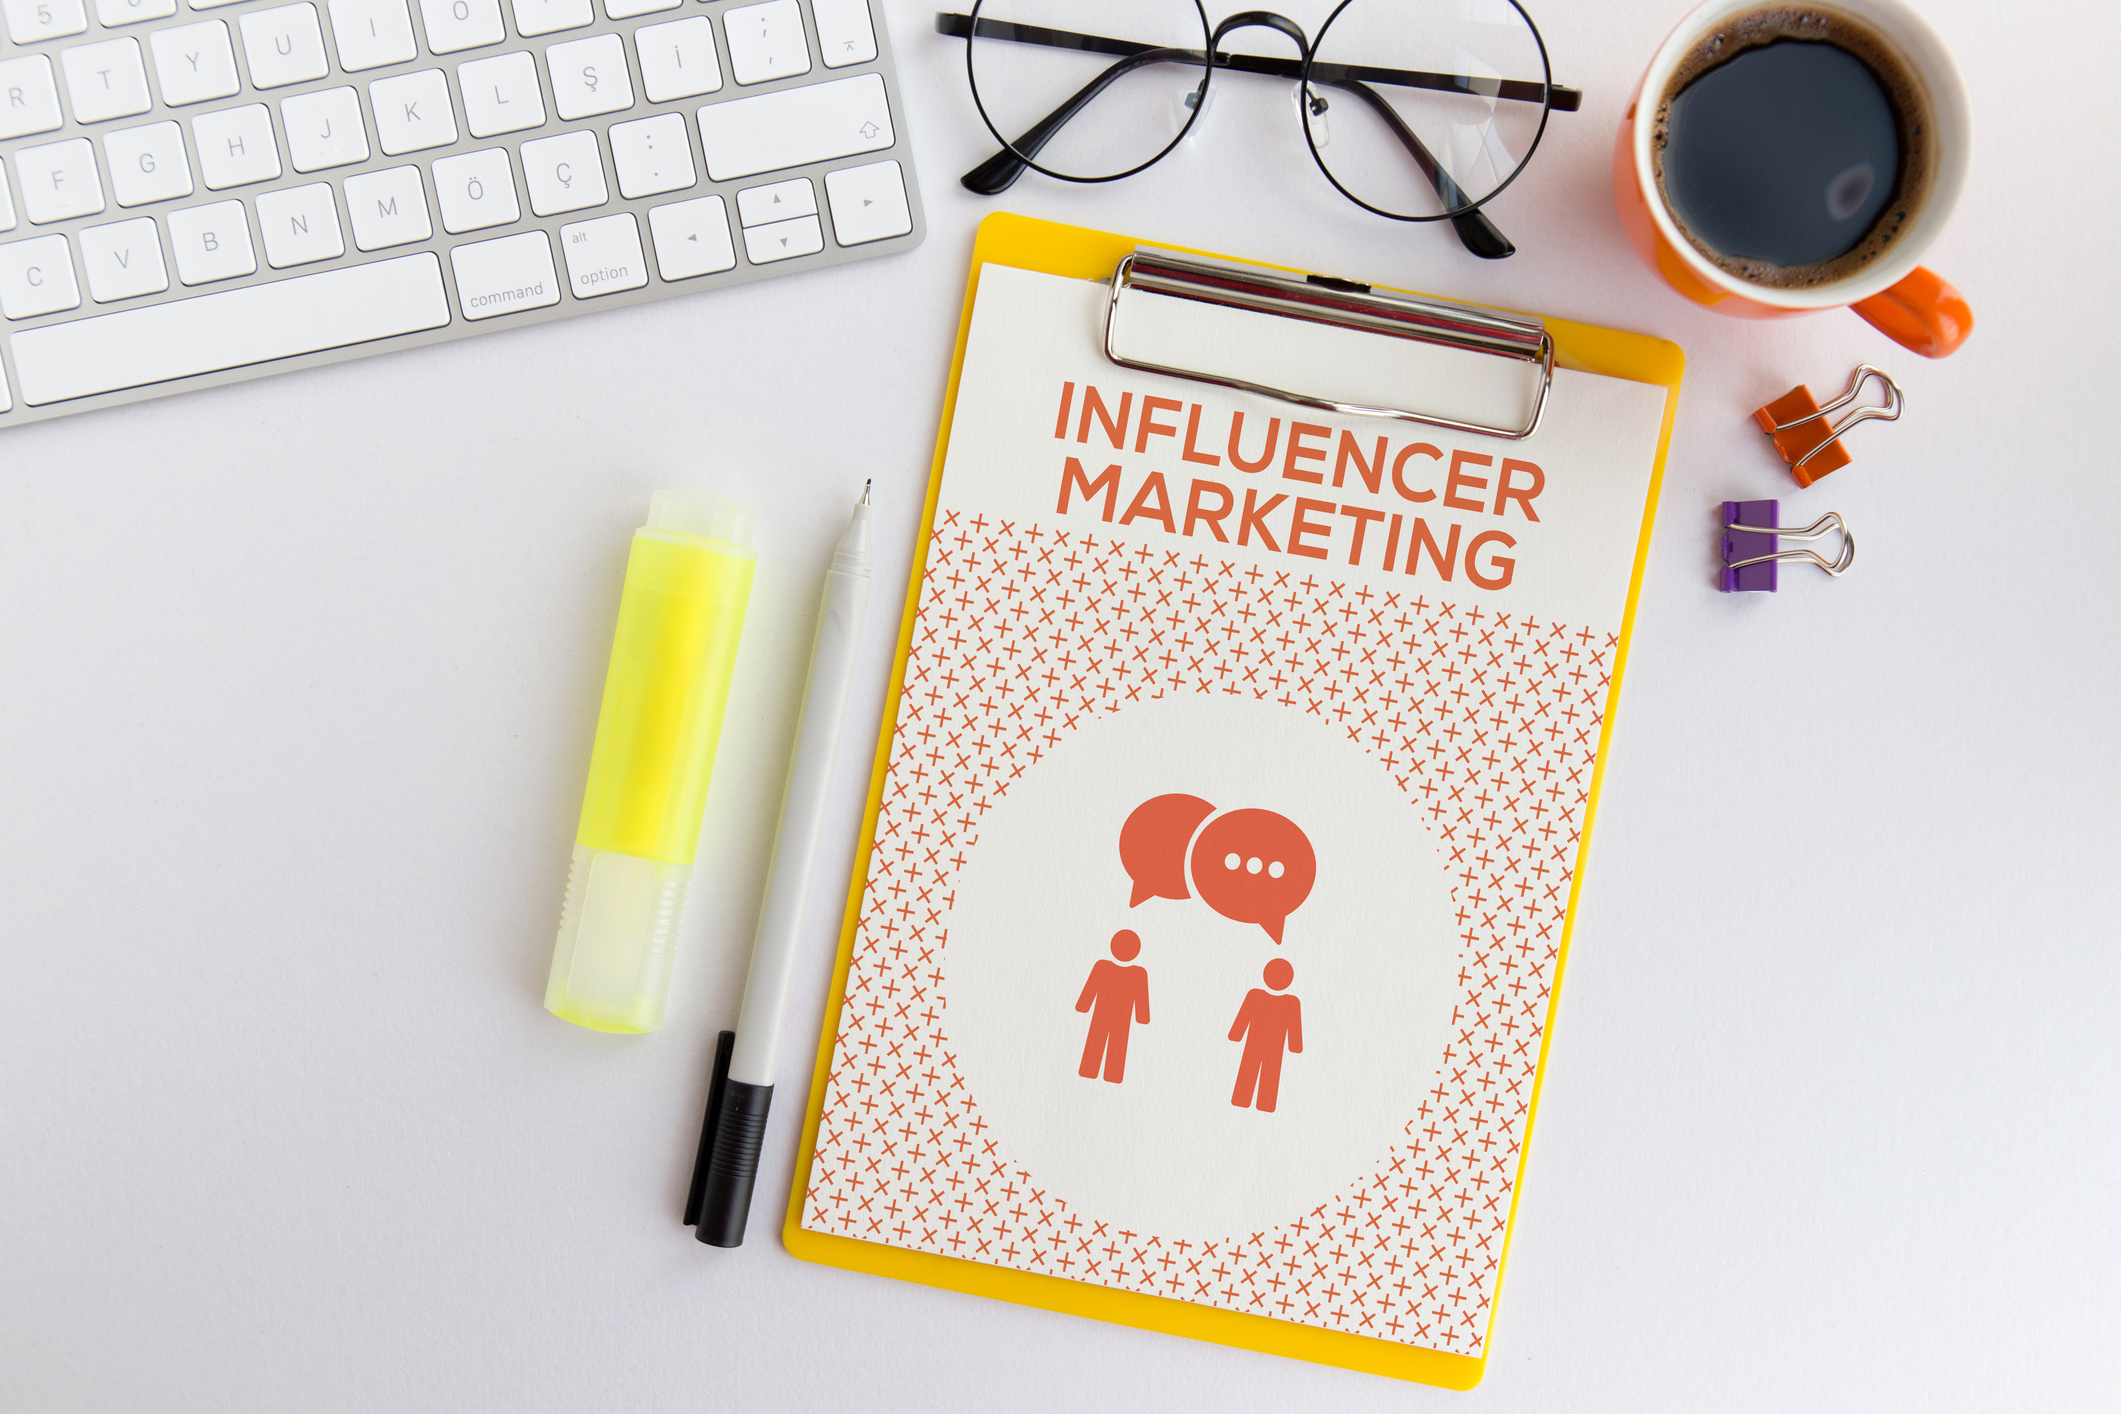 Influencer Marketing Is Powerful — 3 Do's and Don'ts to Utilize It Effectively